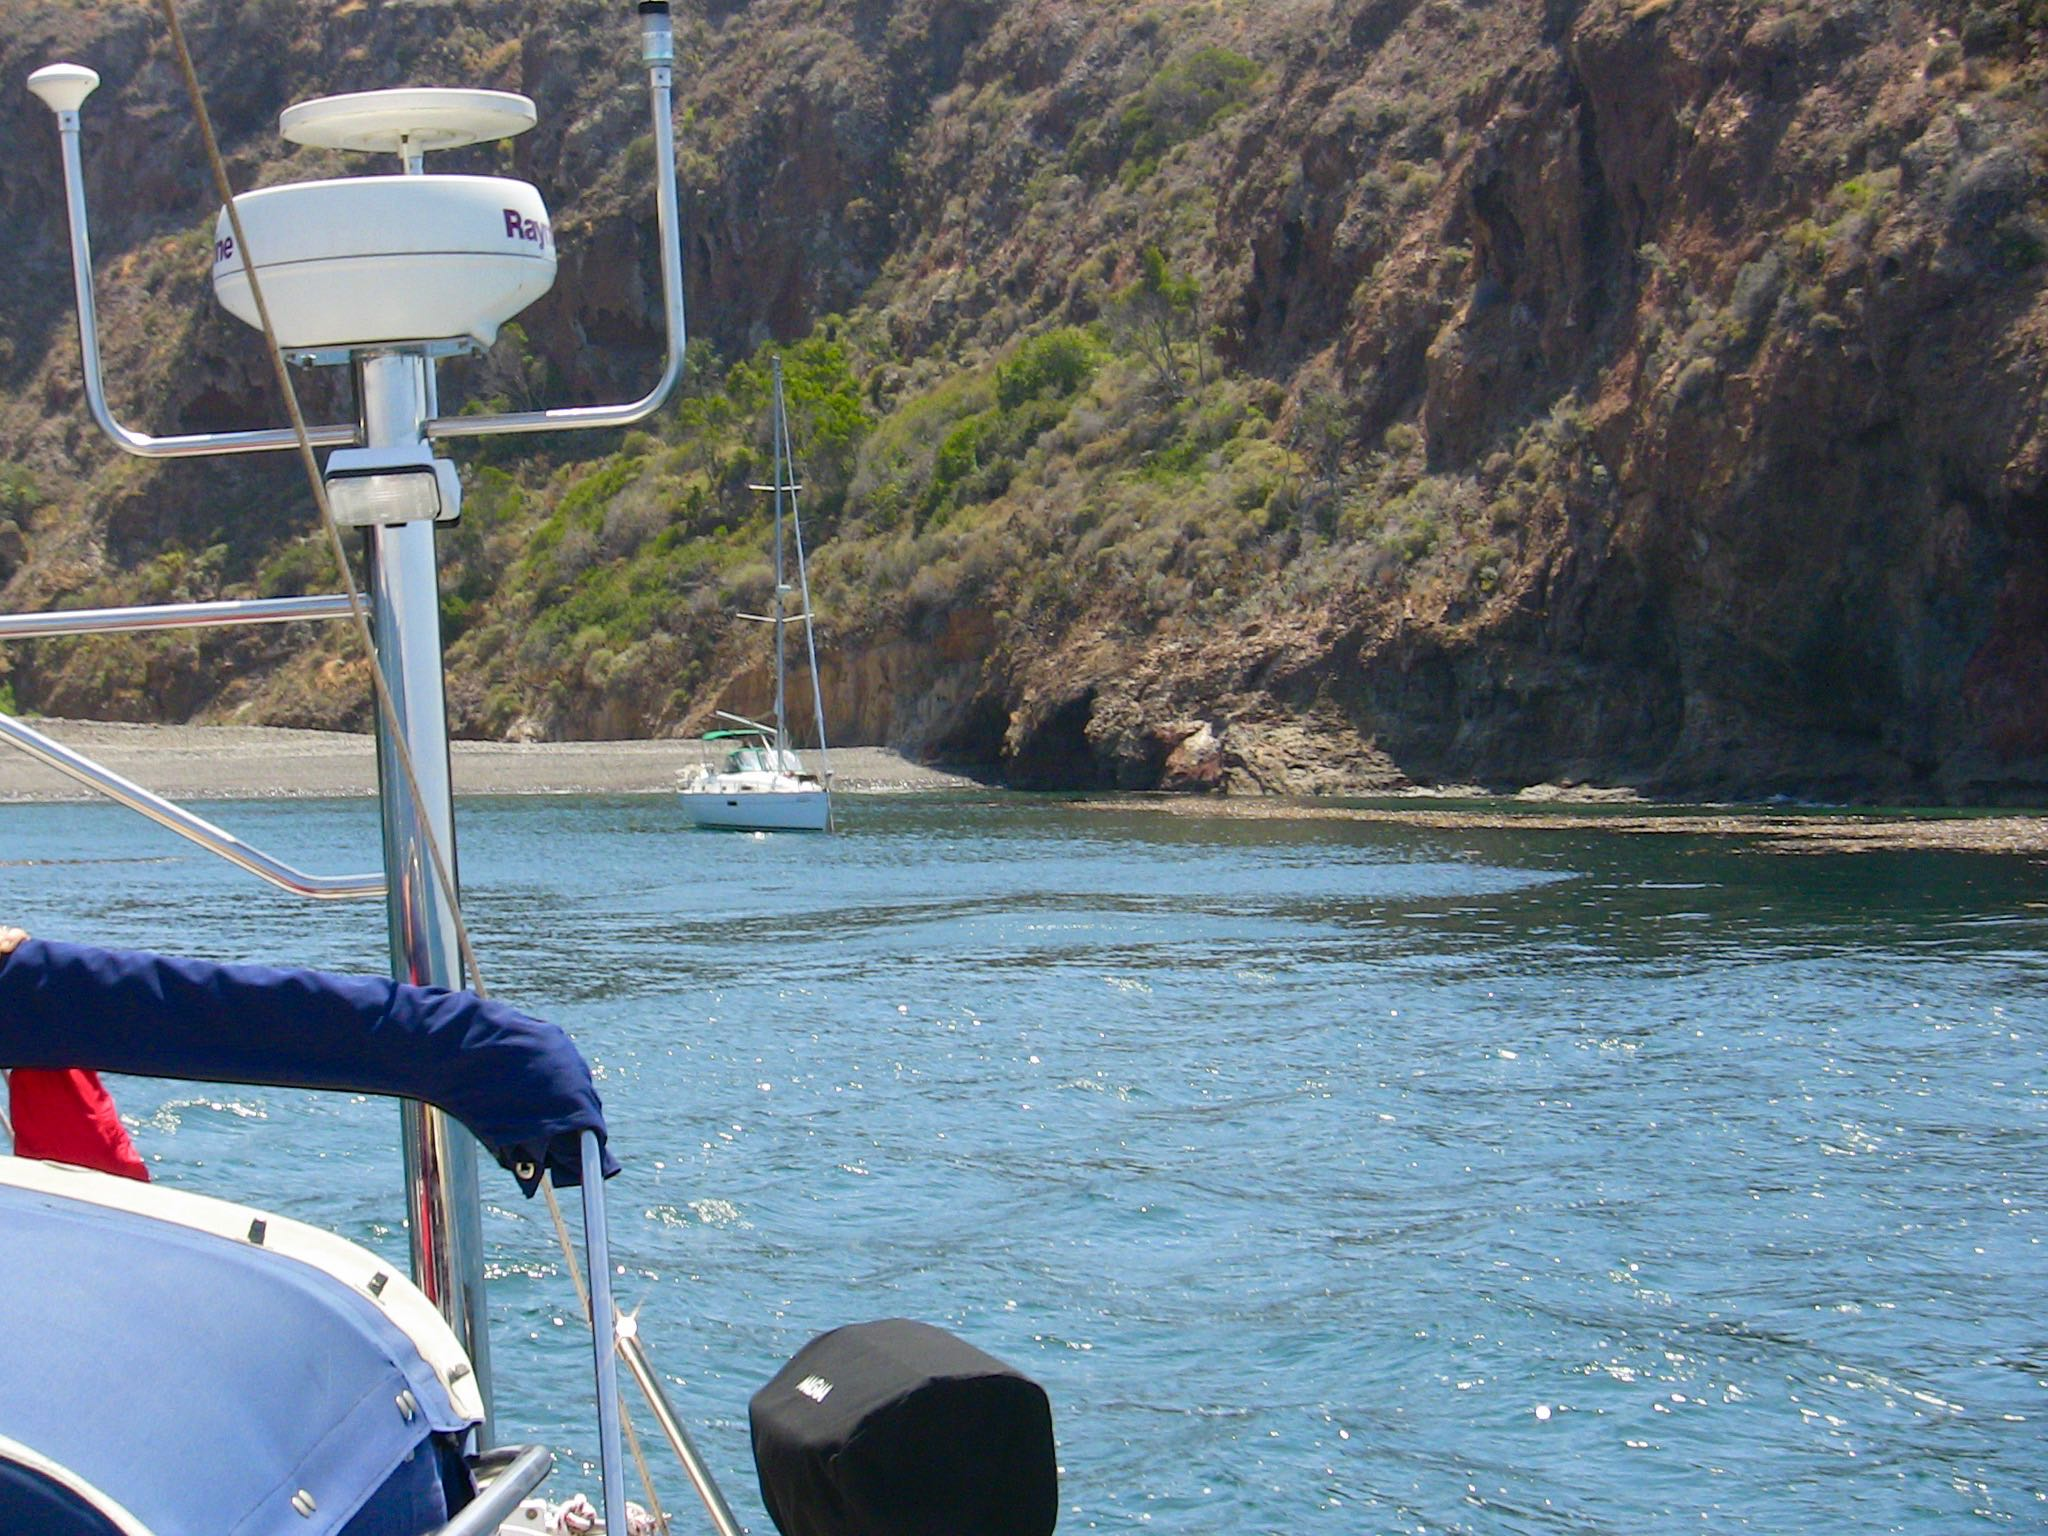 Sail to Twin Harbors on Santa Cruz Island with Capt. Dan Ryder and Sail Channel Islands